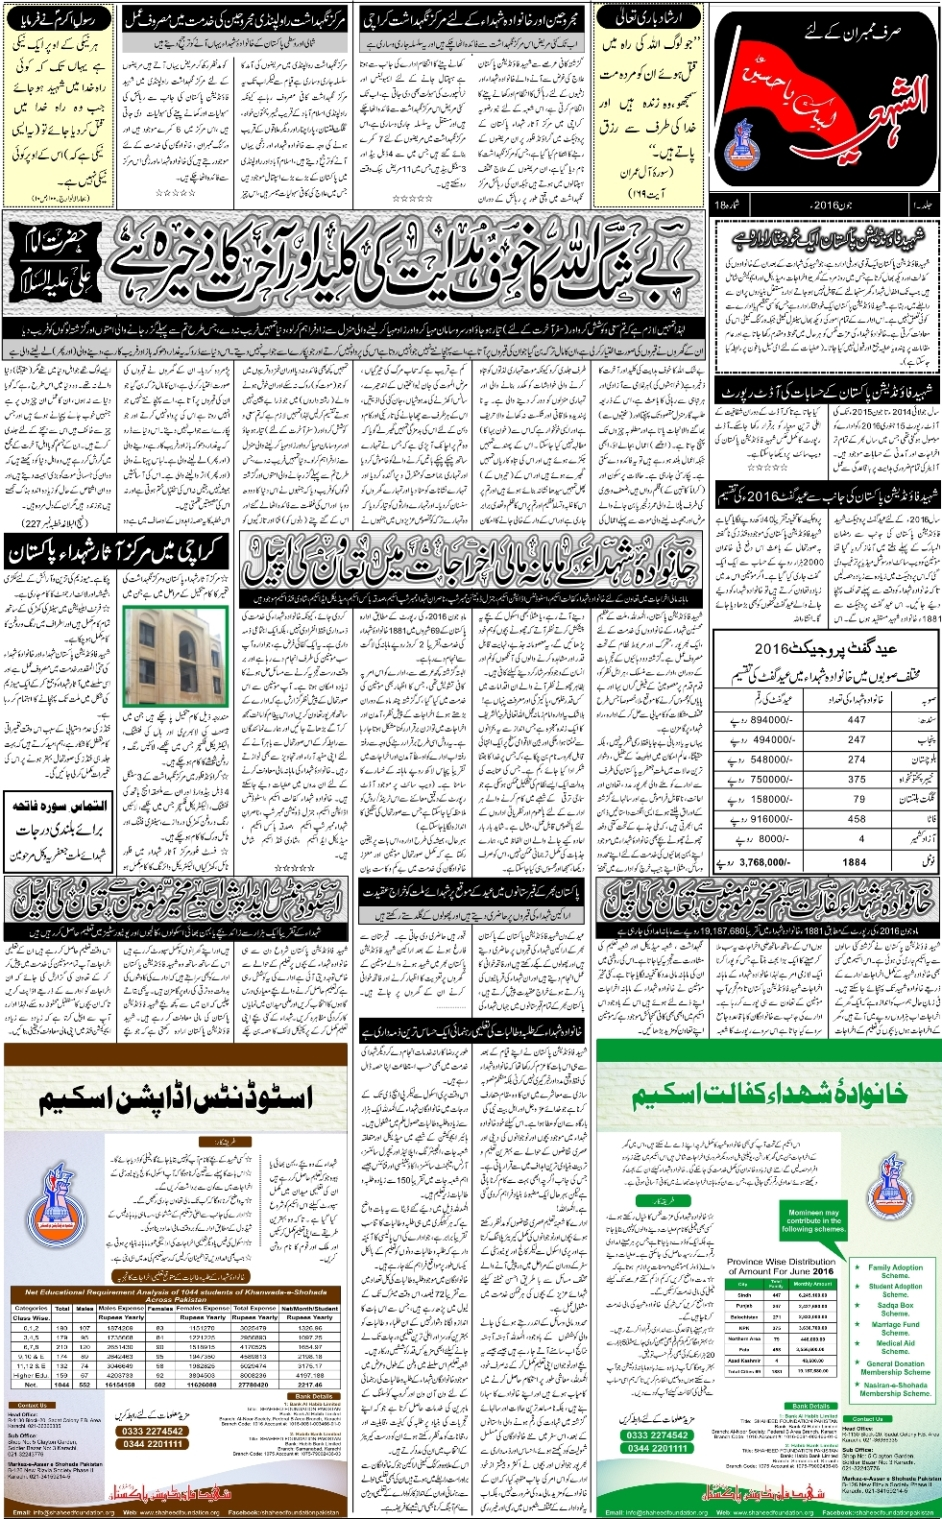 Al-Shaheed News Paper June 2016